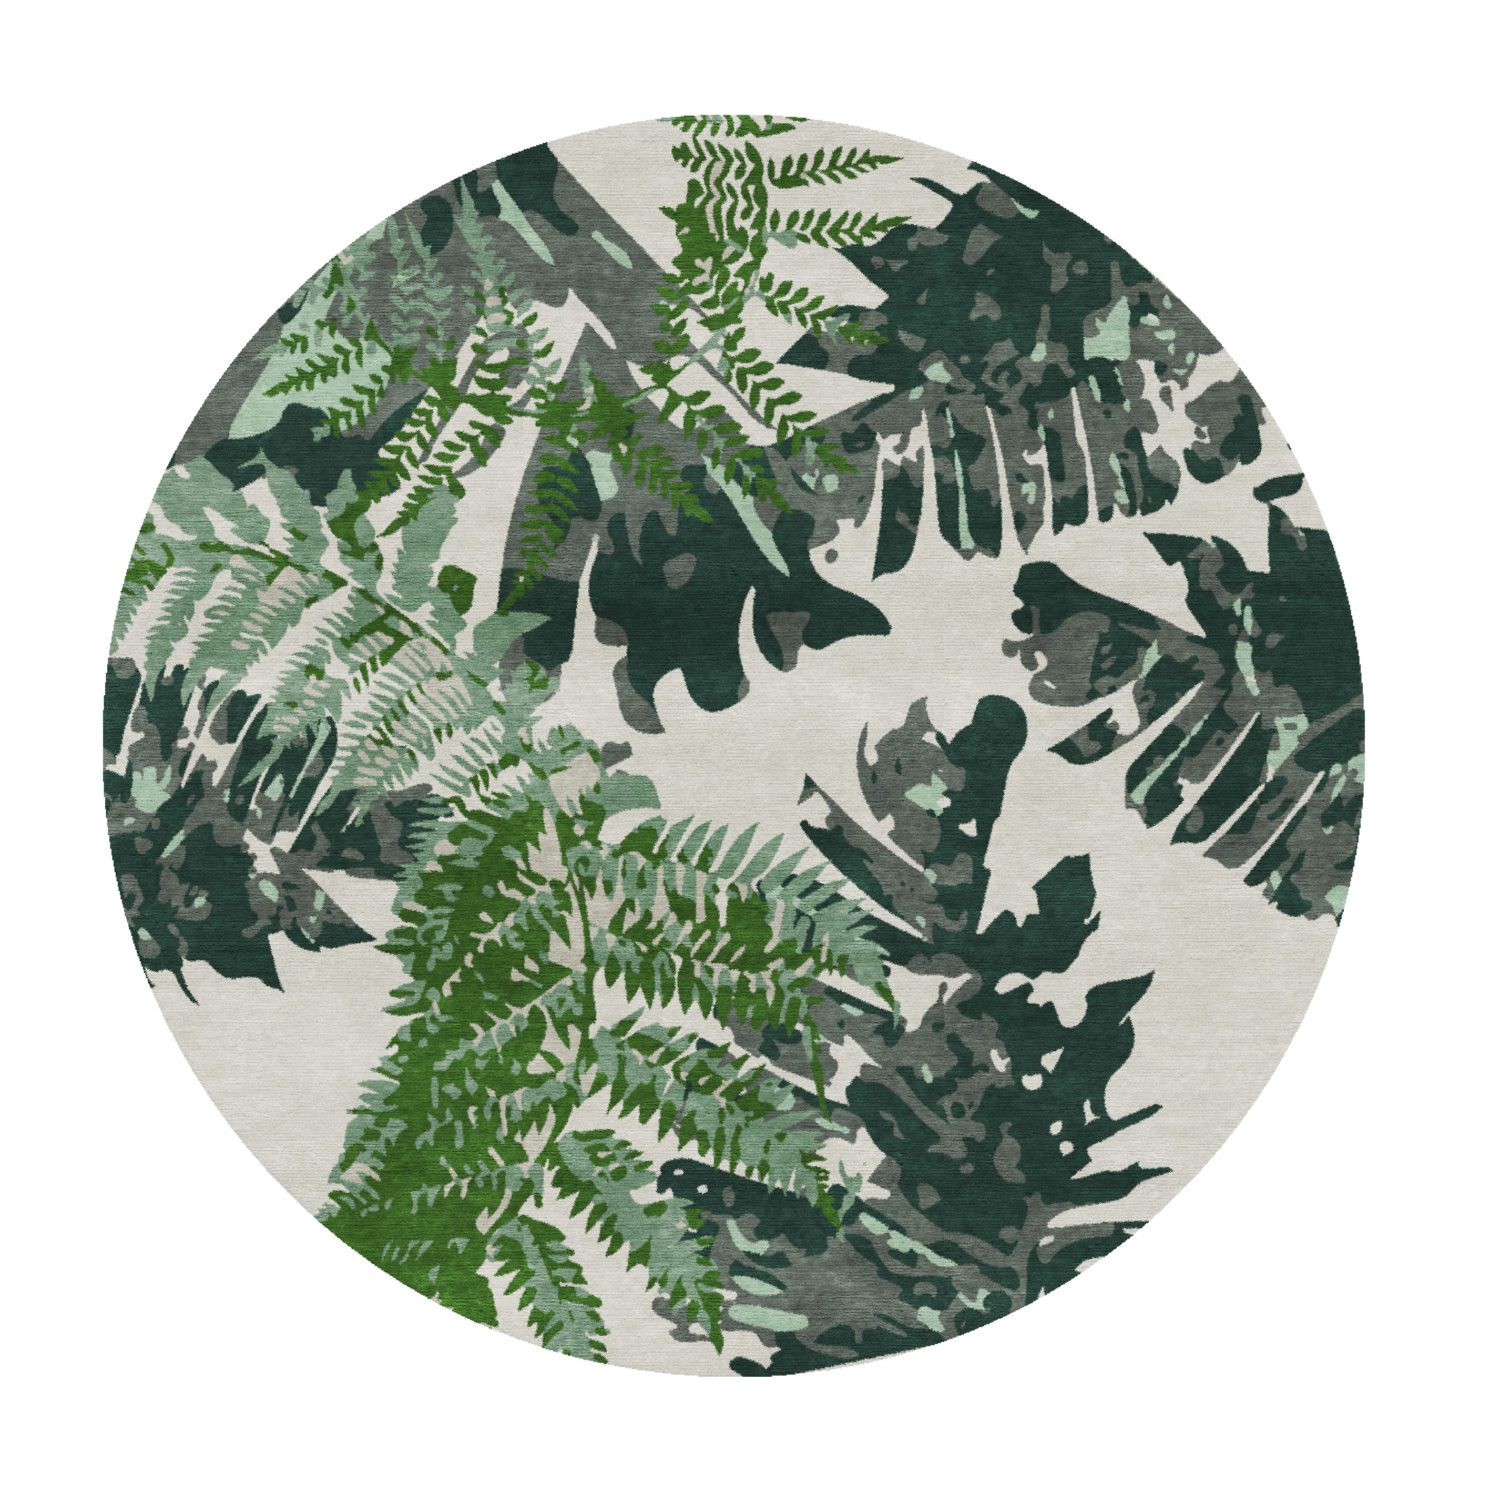 If you love tropical prints, then this is the rug for you